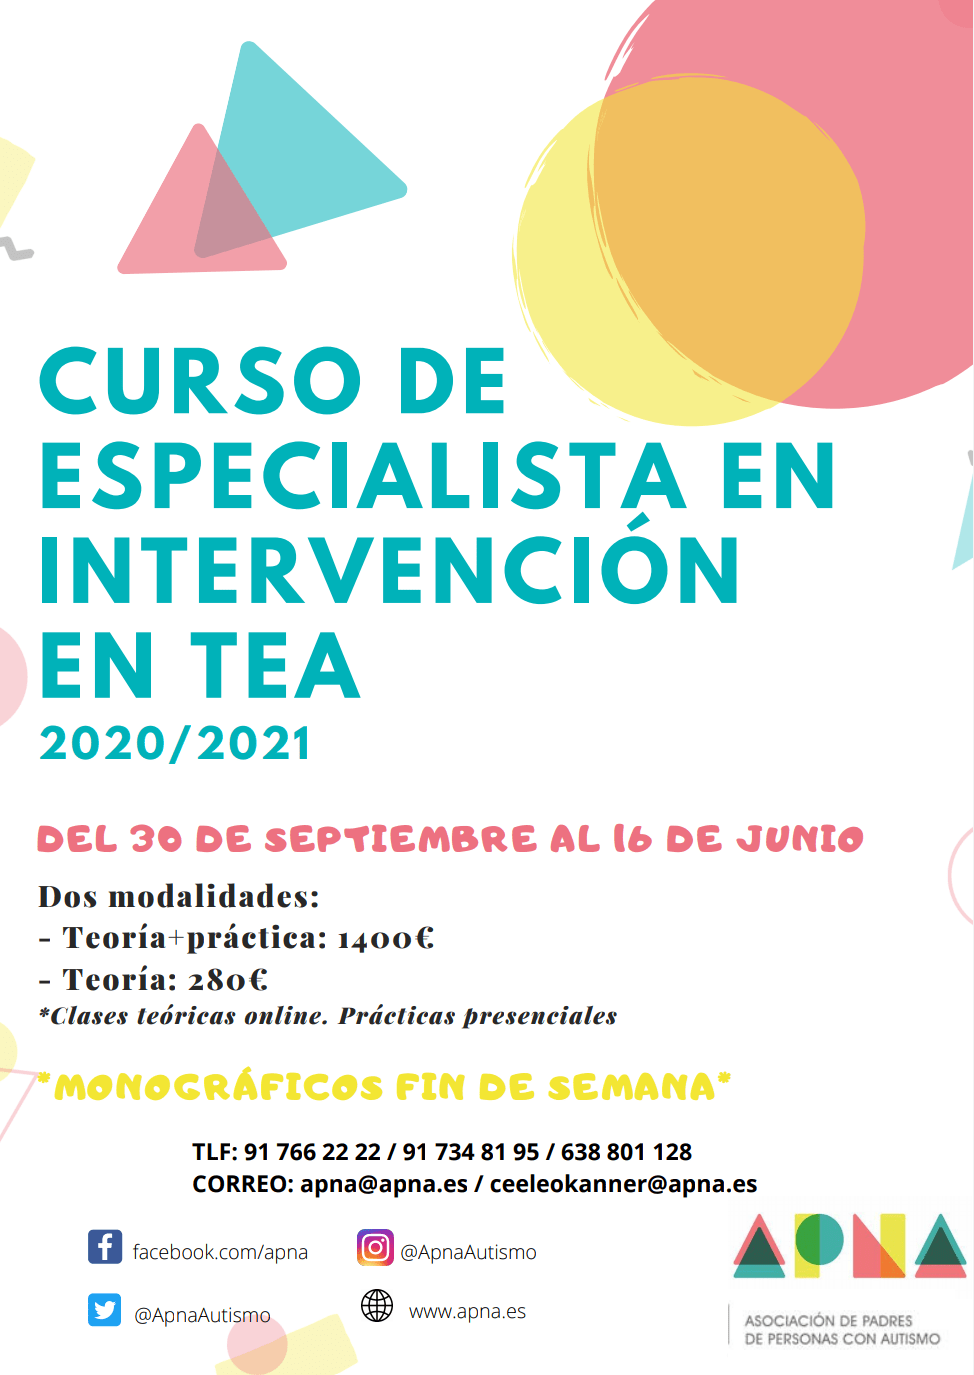 CURSO DE ESPECIALISTA EN INTERVENCIÓN EN TEA